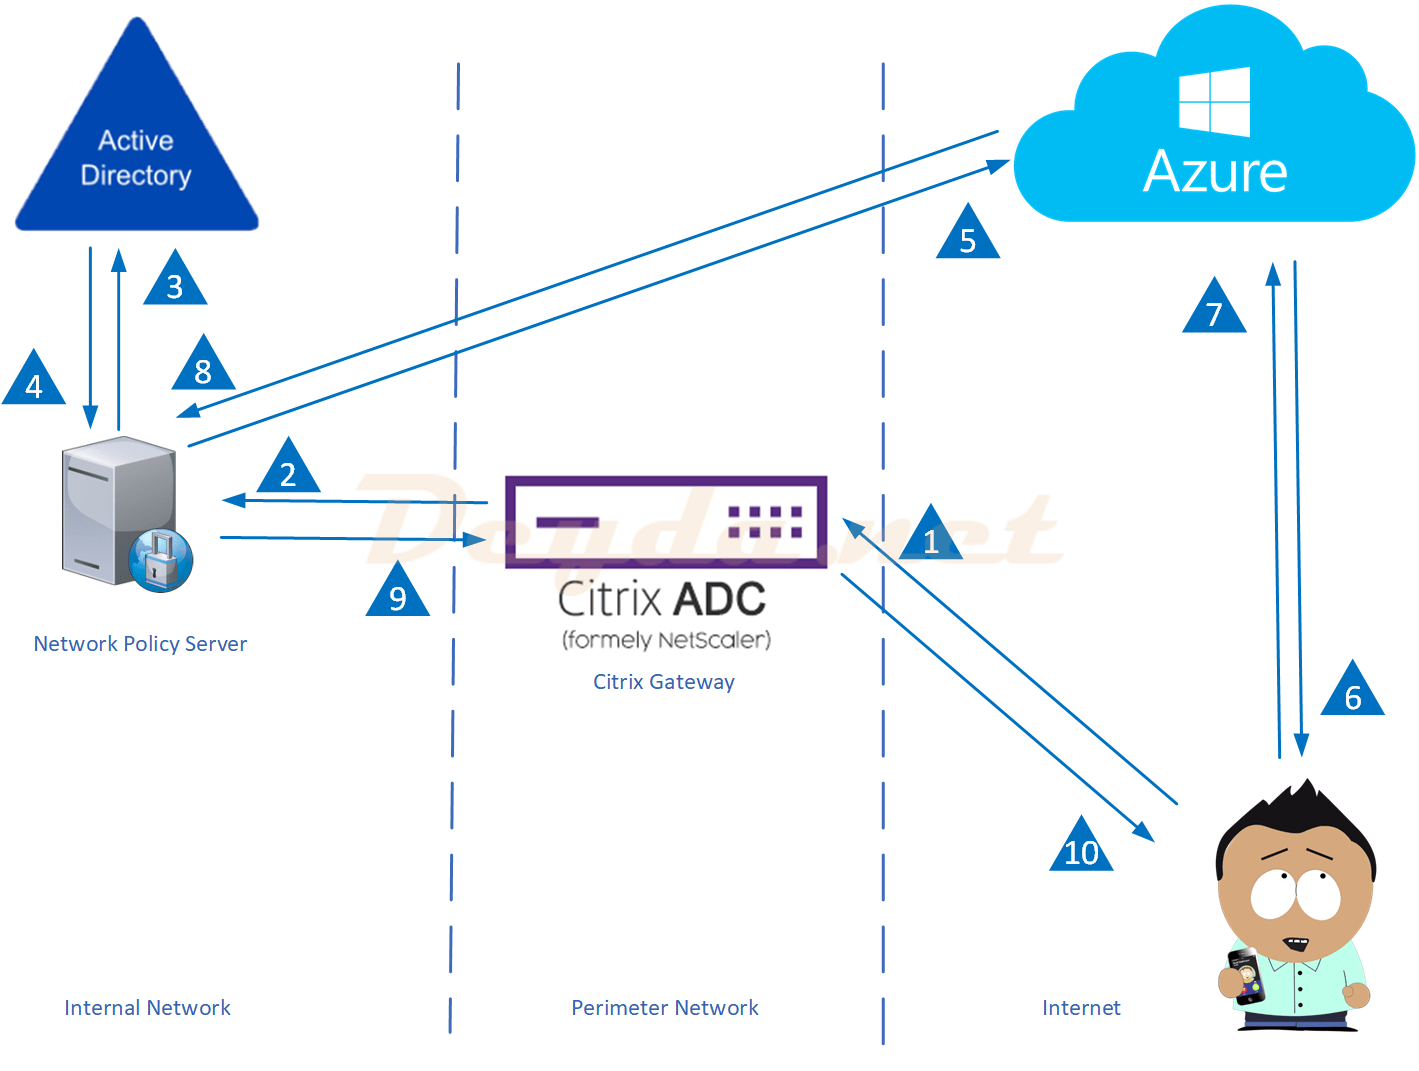 active directory domain services in the perimeter network